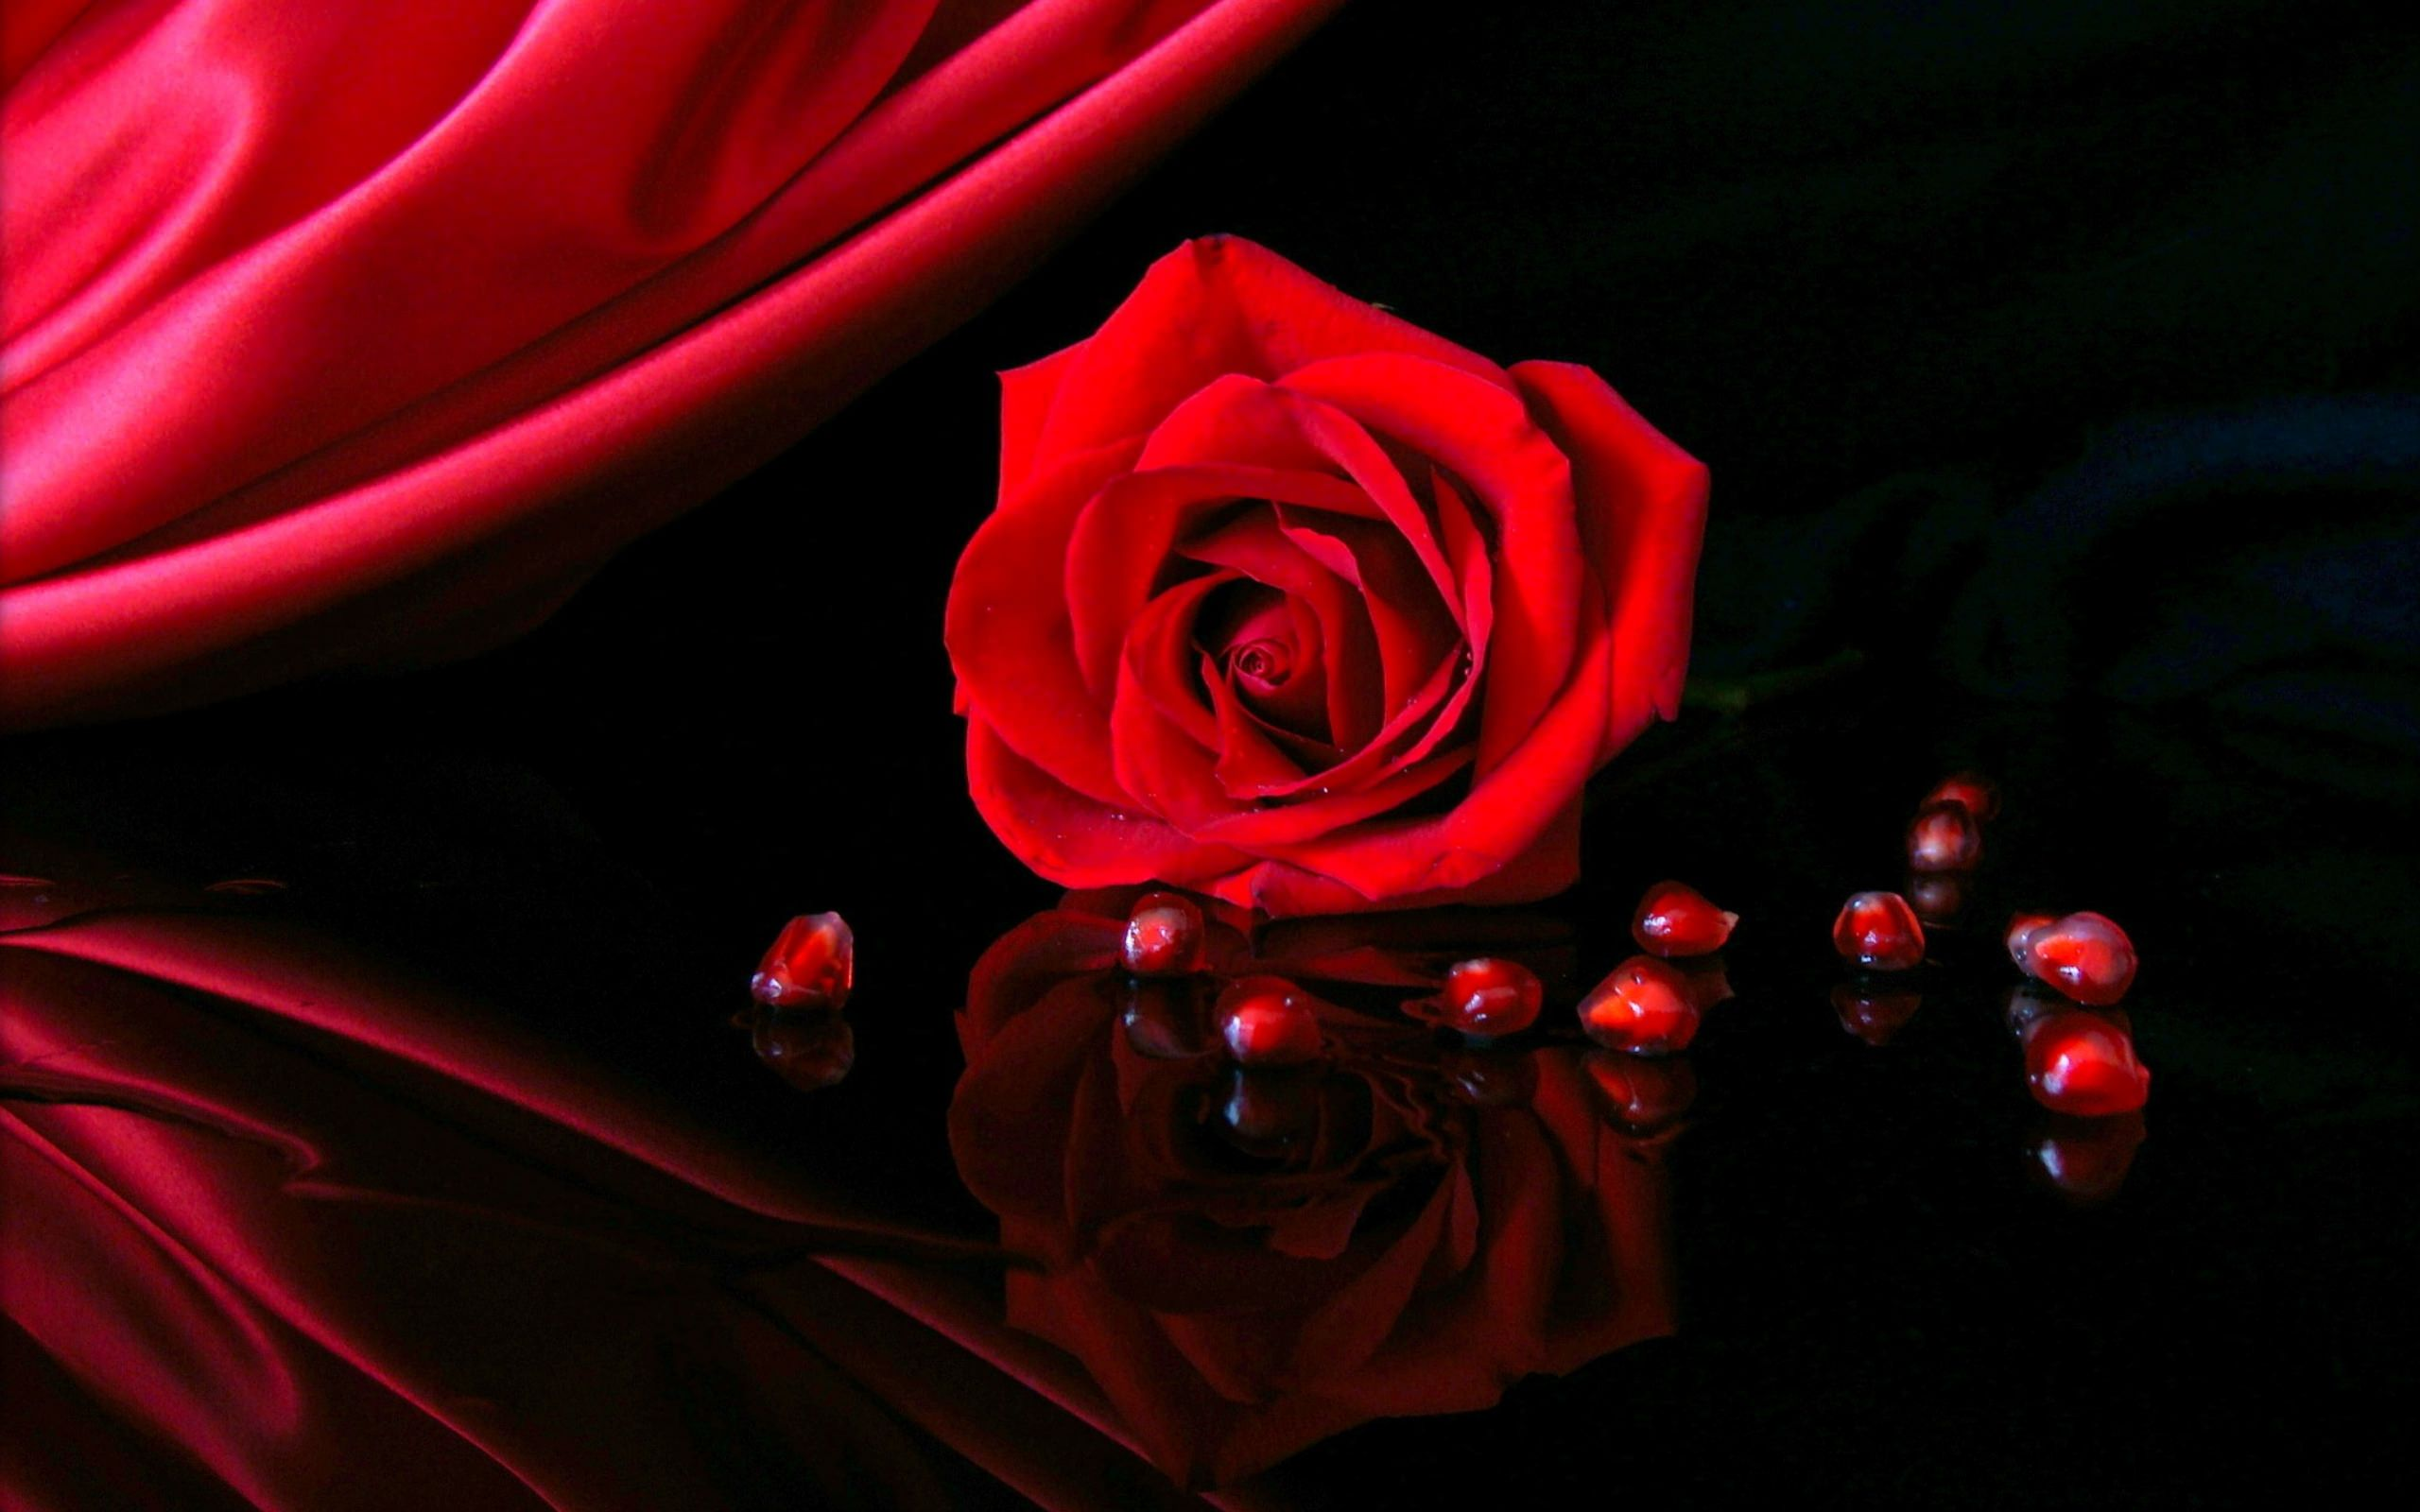 Pin by Ioanna Vr on wallpapers Pinterest Rose wallpaper Red